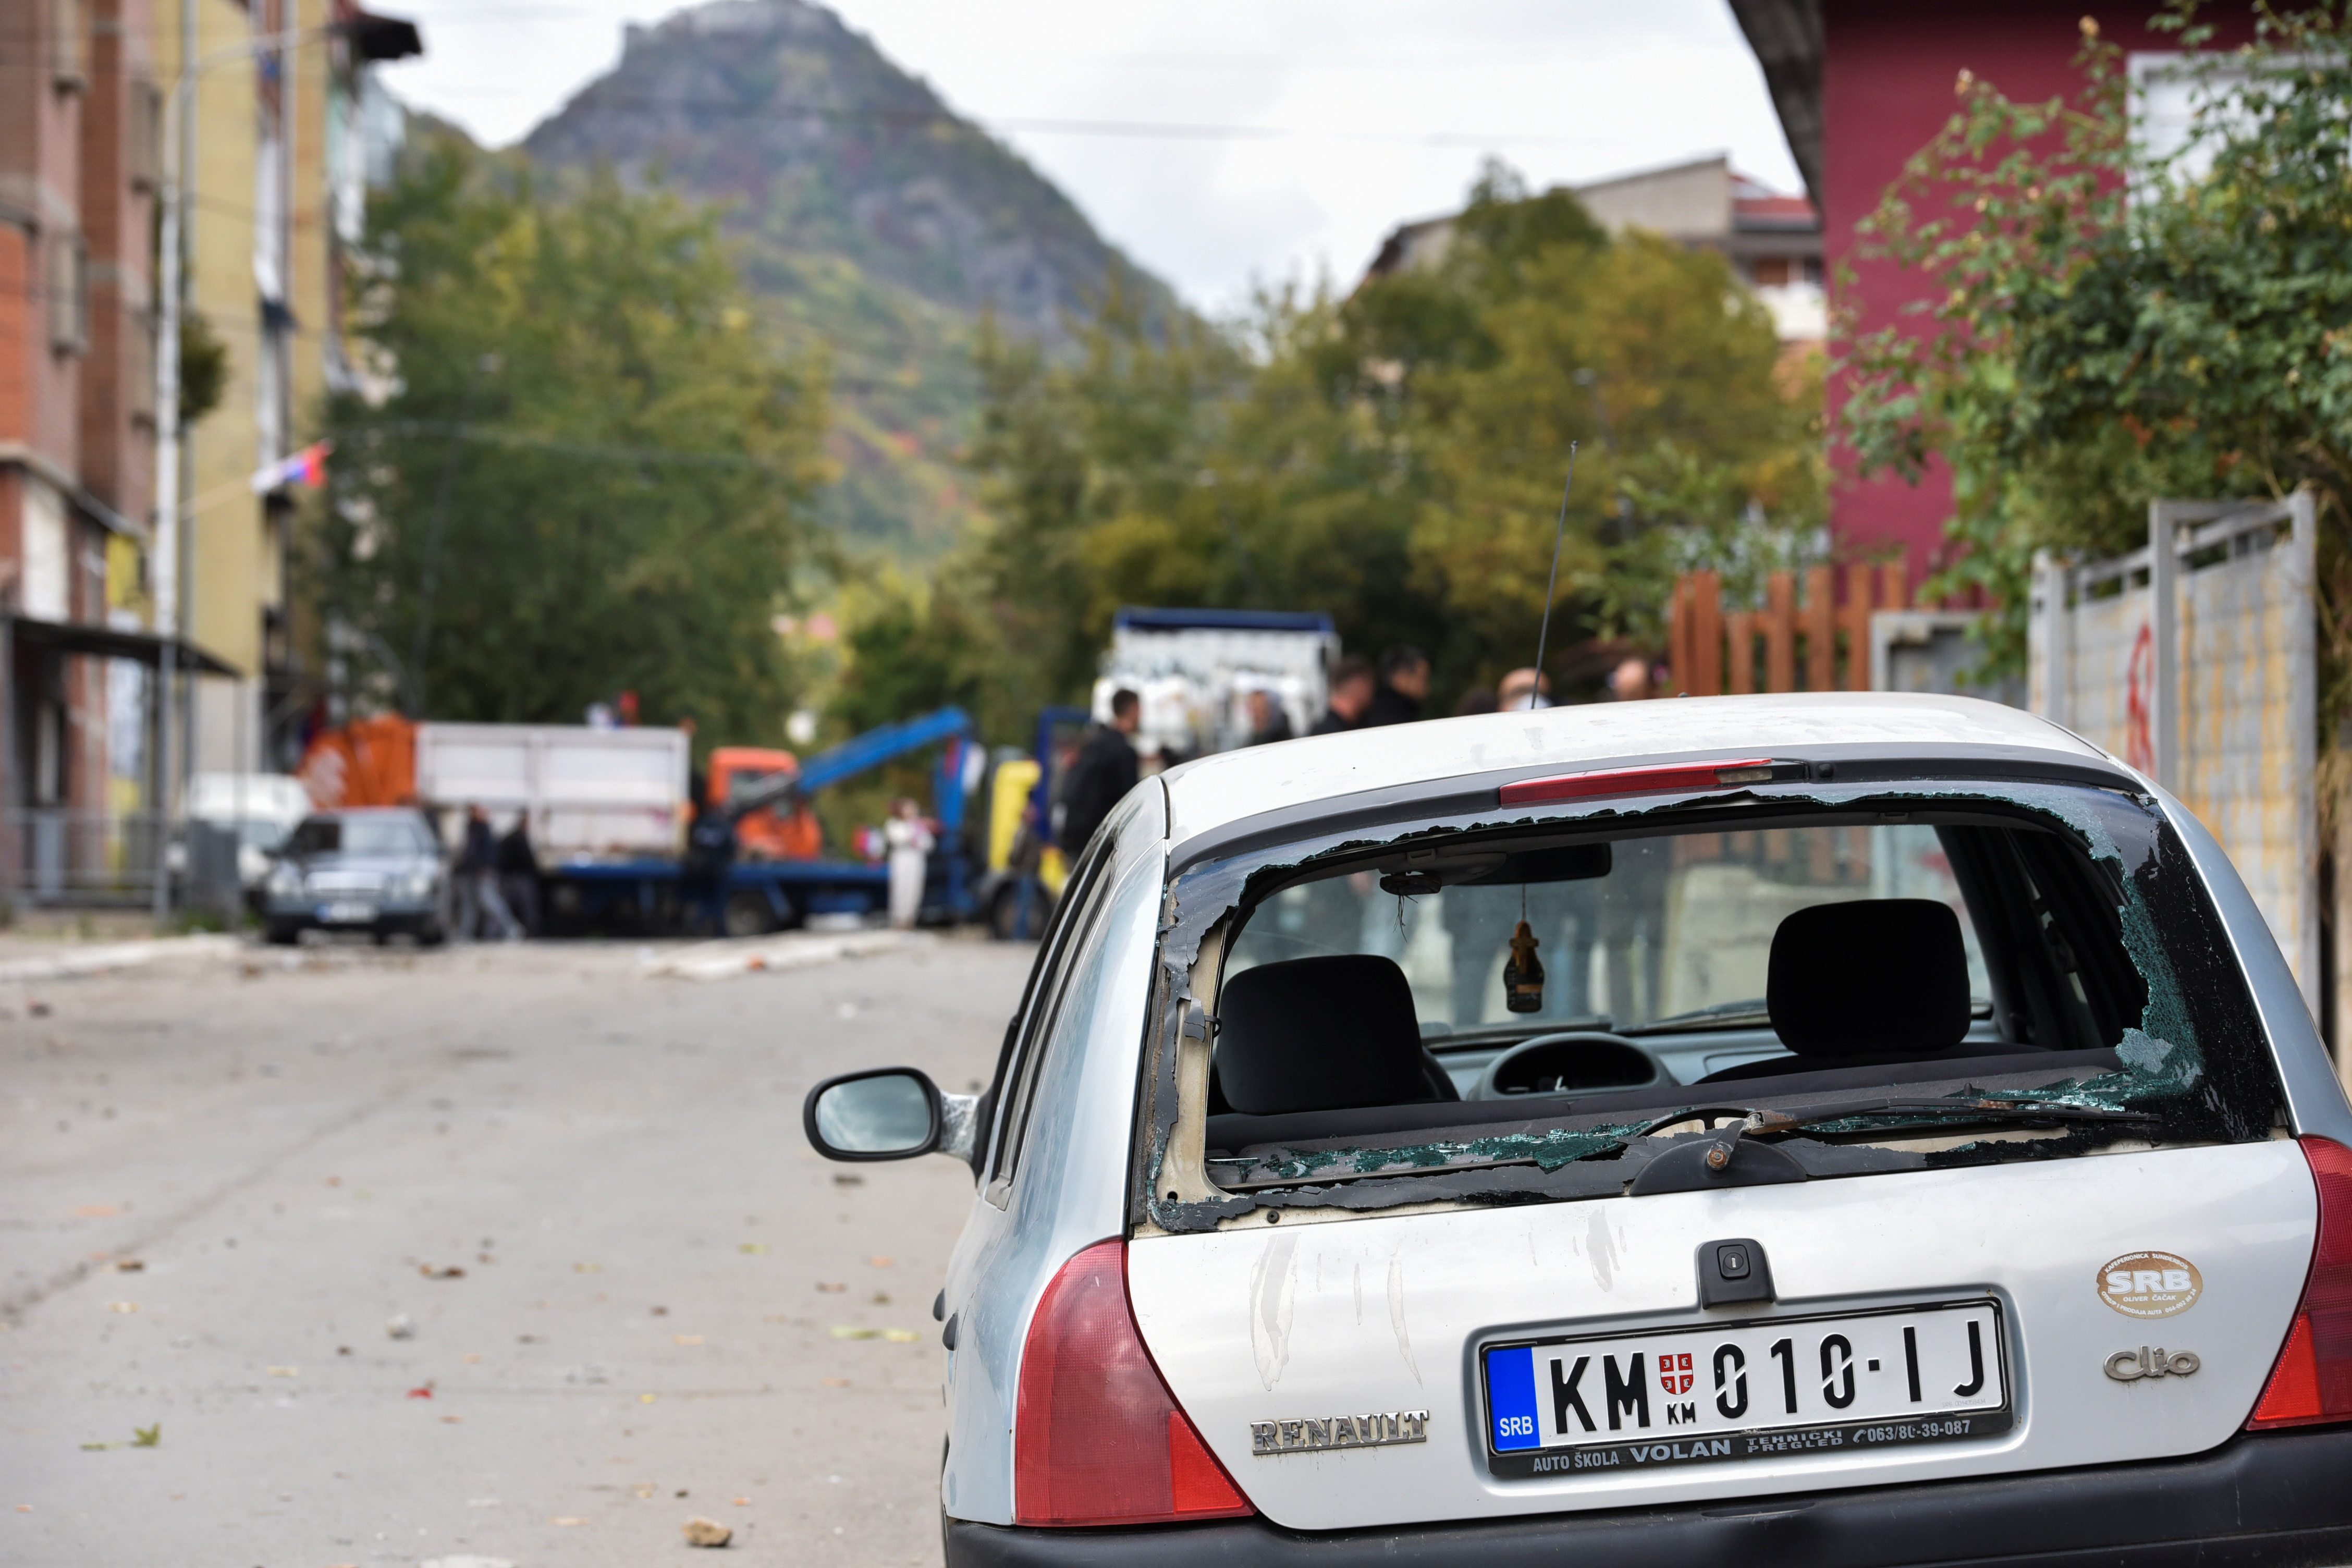 Damaged cars are pictured following clashes with ethnic Serbs during a police operation against the smuggling of goods, in Mitrovica, Kosovo, October 13, 2021. REUTERS/Laura Hasani